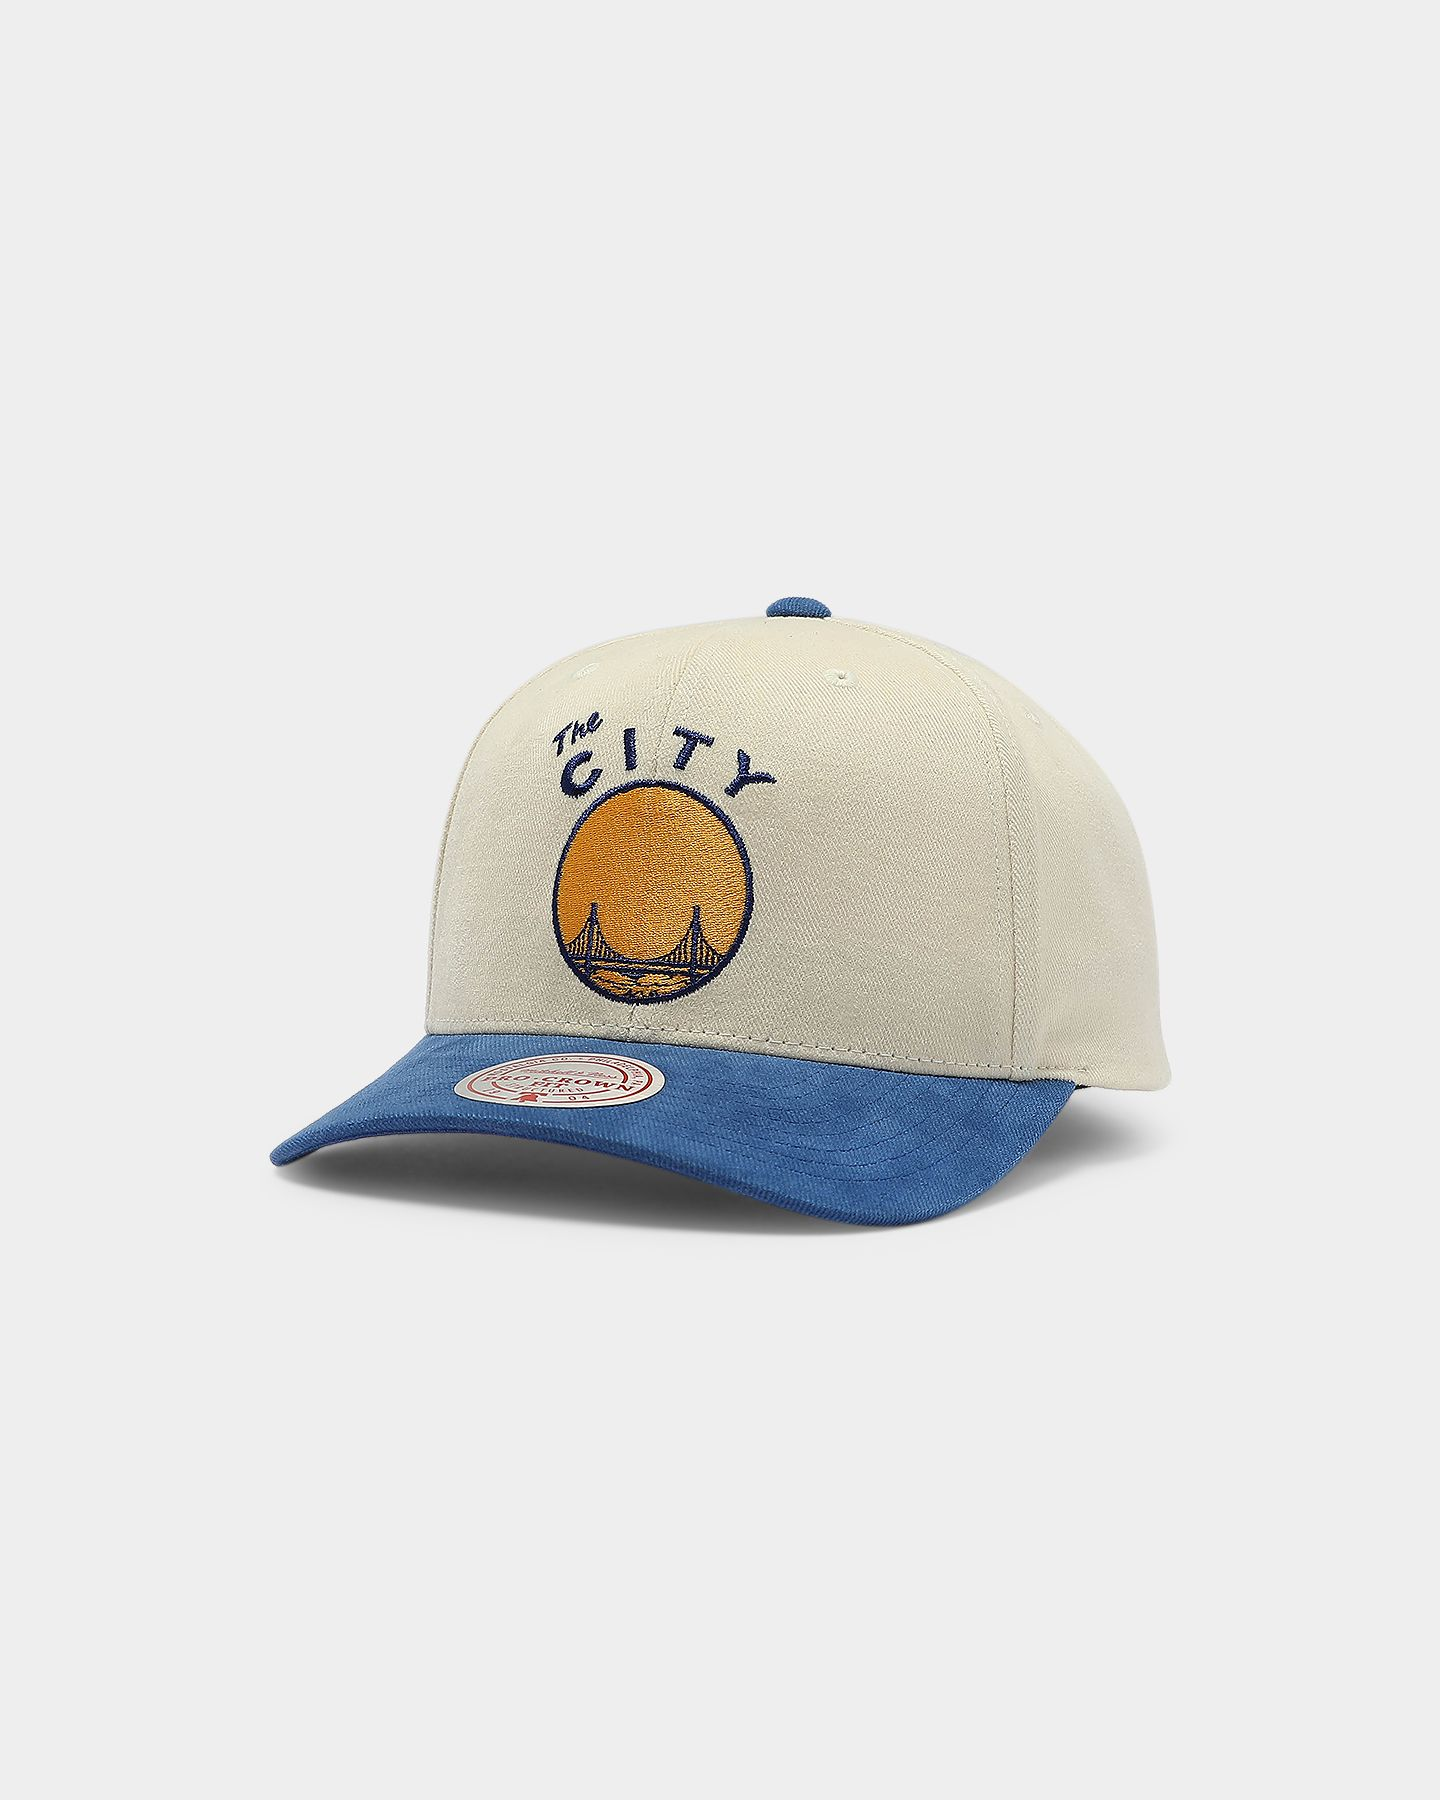 Mitchell Ness Golden State Warriors Go Team Pro Crown Snapback Off White Royal In 2021 Crown Snapback Mitchell Ness Golden State Warriors